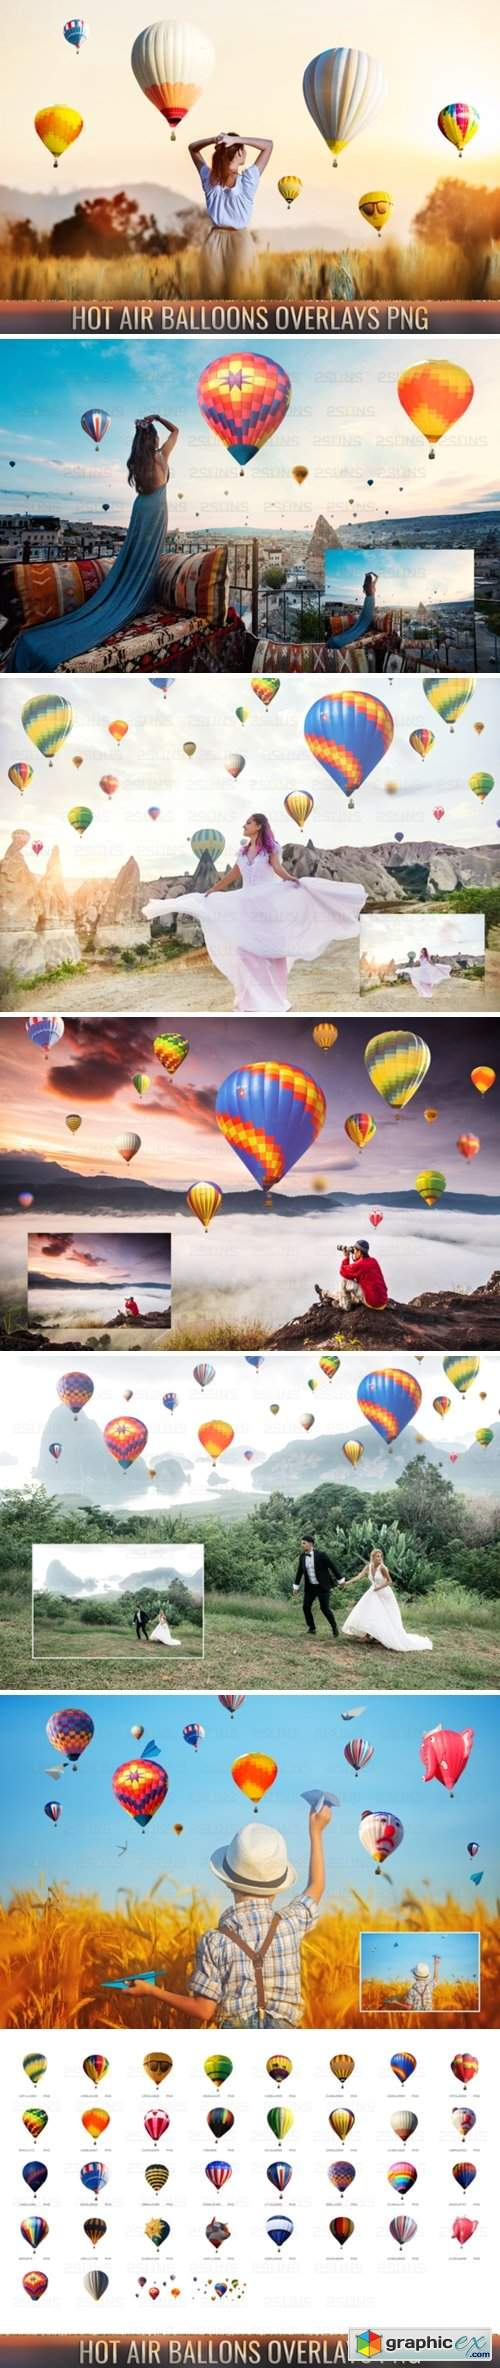 36 Hot Air Balloon Photo Overlays